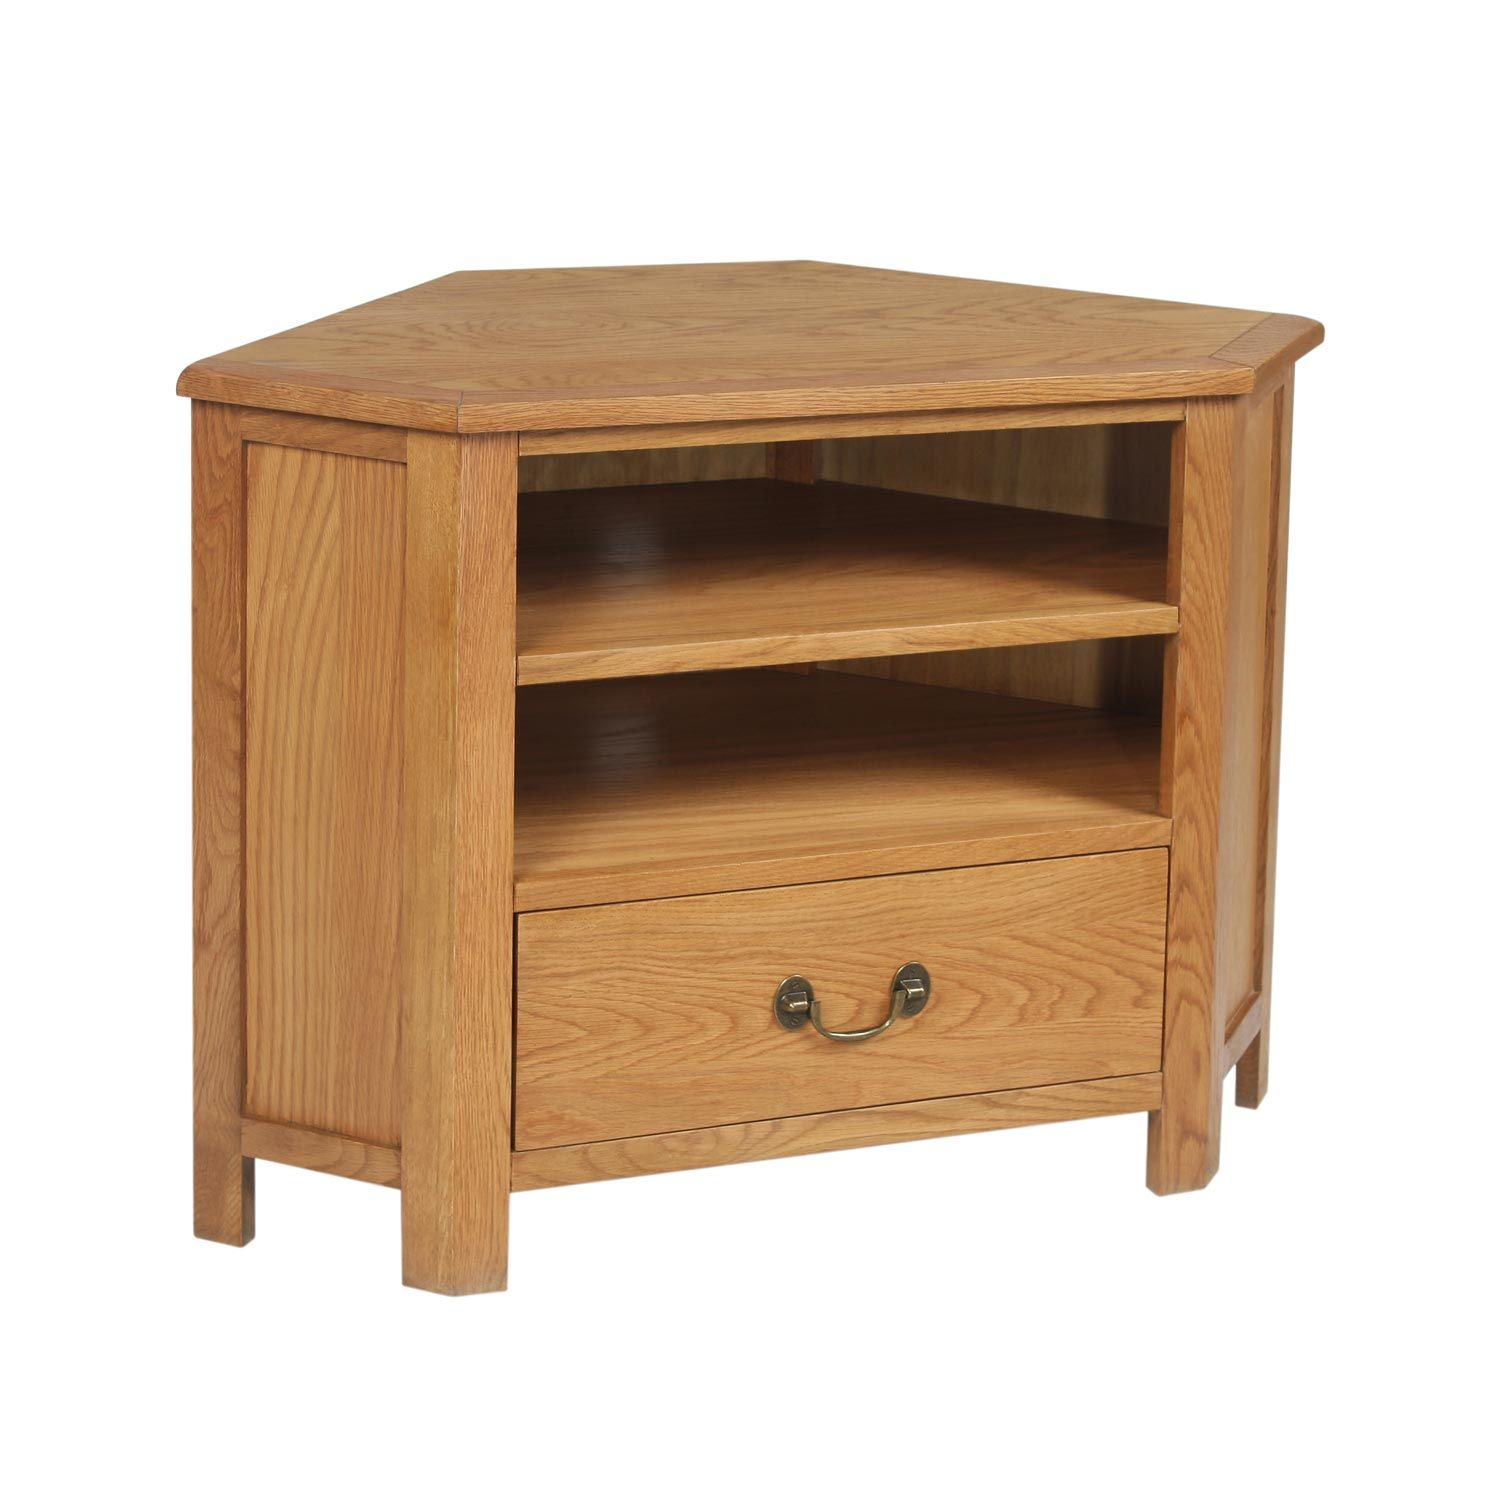 Living Room Furniture Tv Corner hampton oak corner tv stand with storage | the range | t.v.